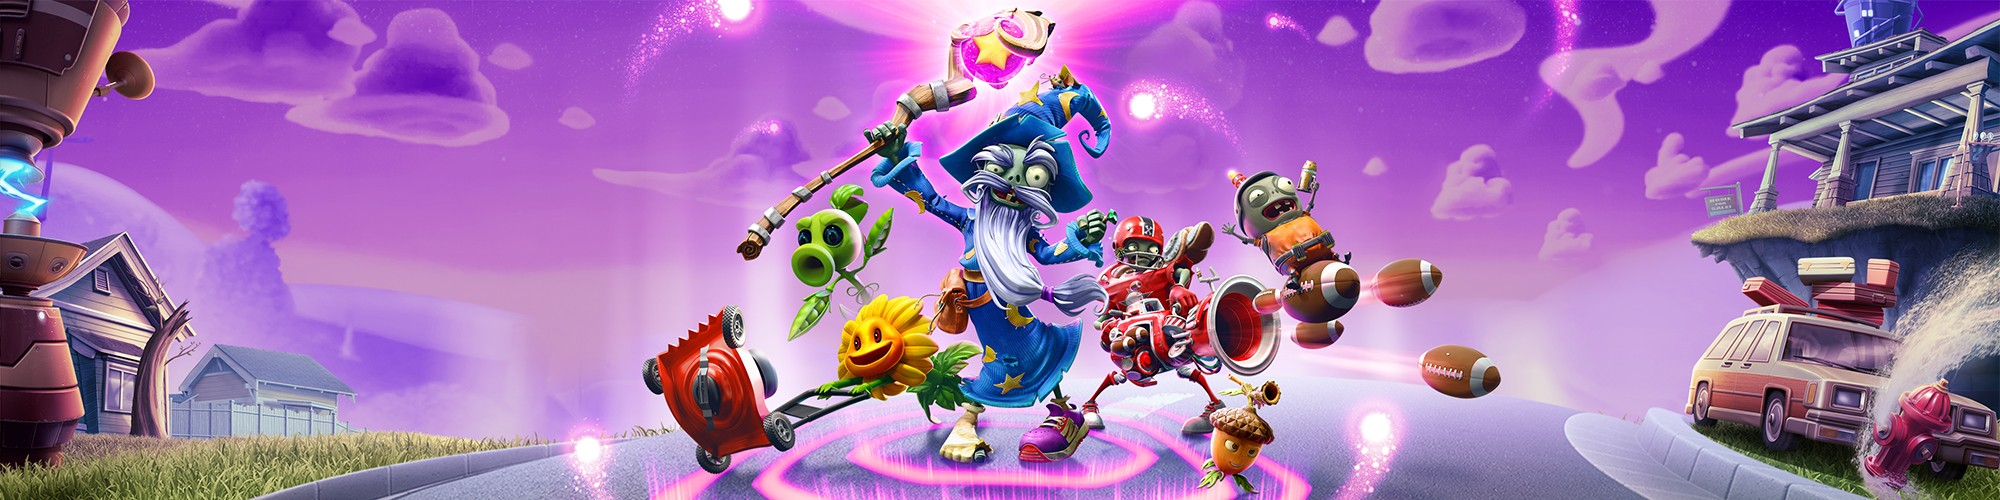 PvZ:BfN technical specifications for PC